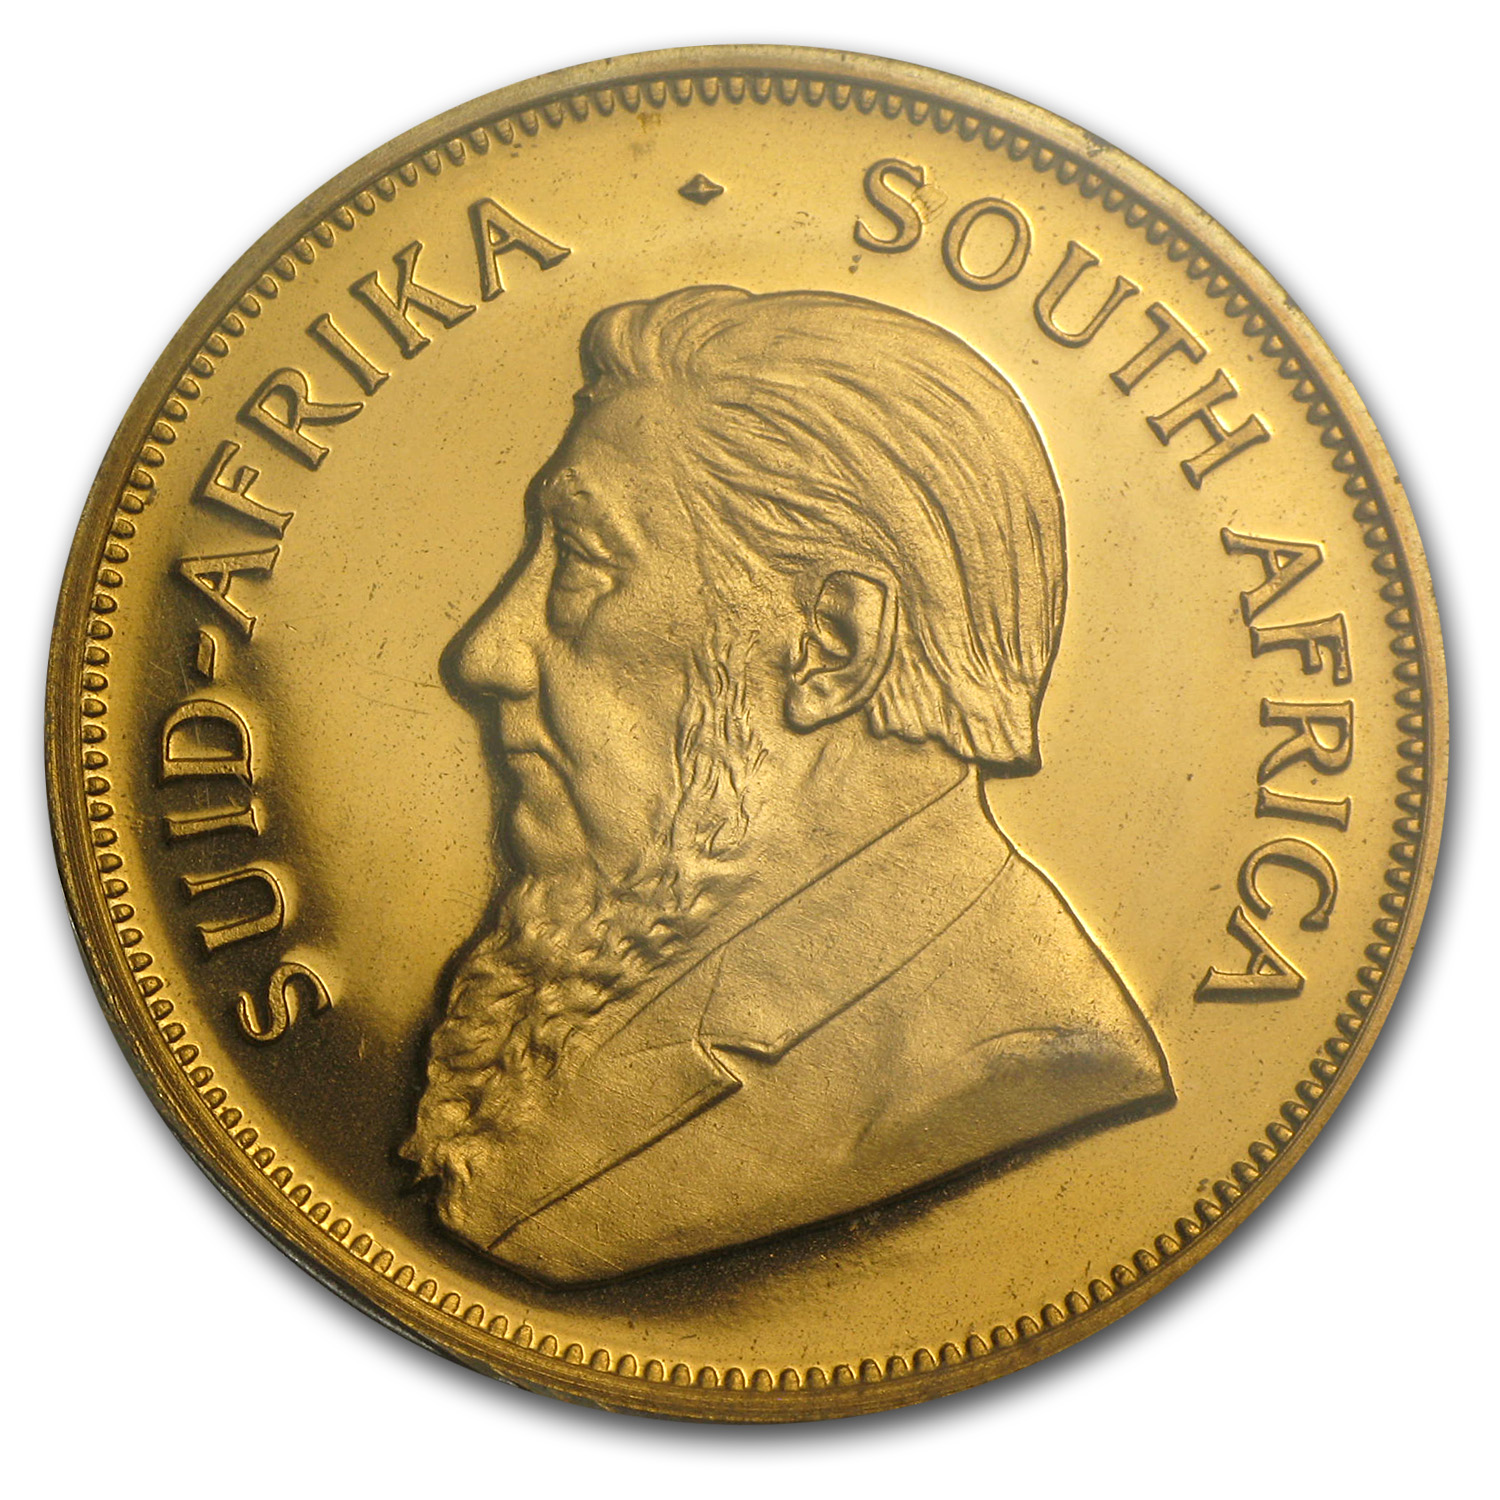 1979-1982 South Africa 1 oz Proof Gold Krugerrand (SAGCE)